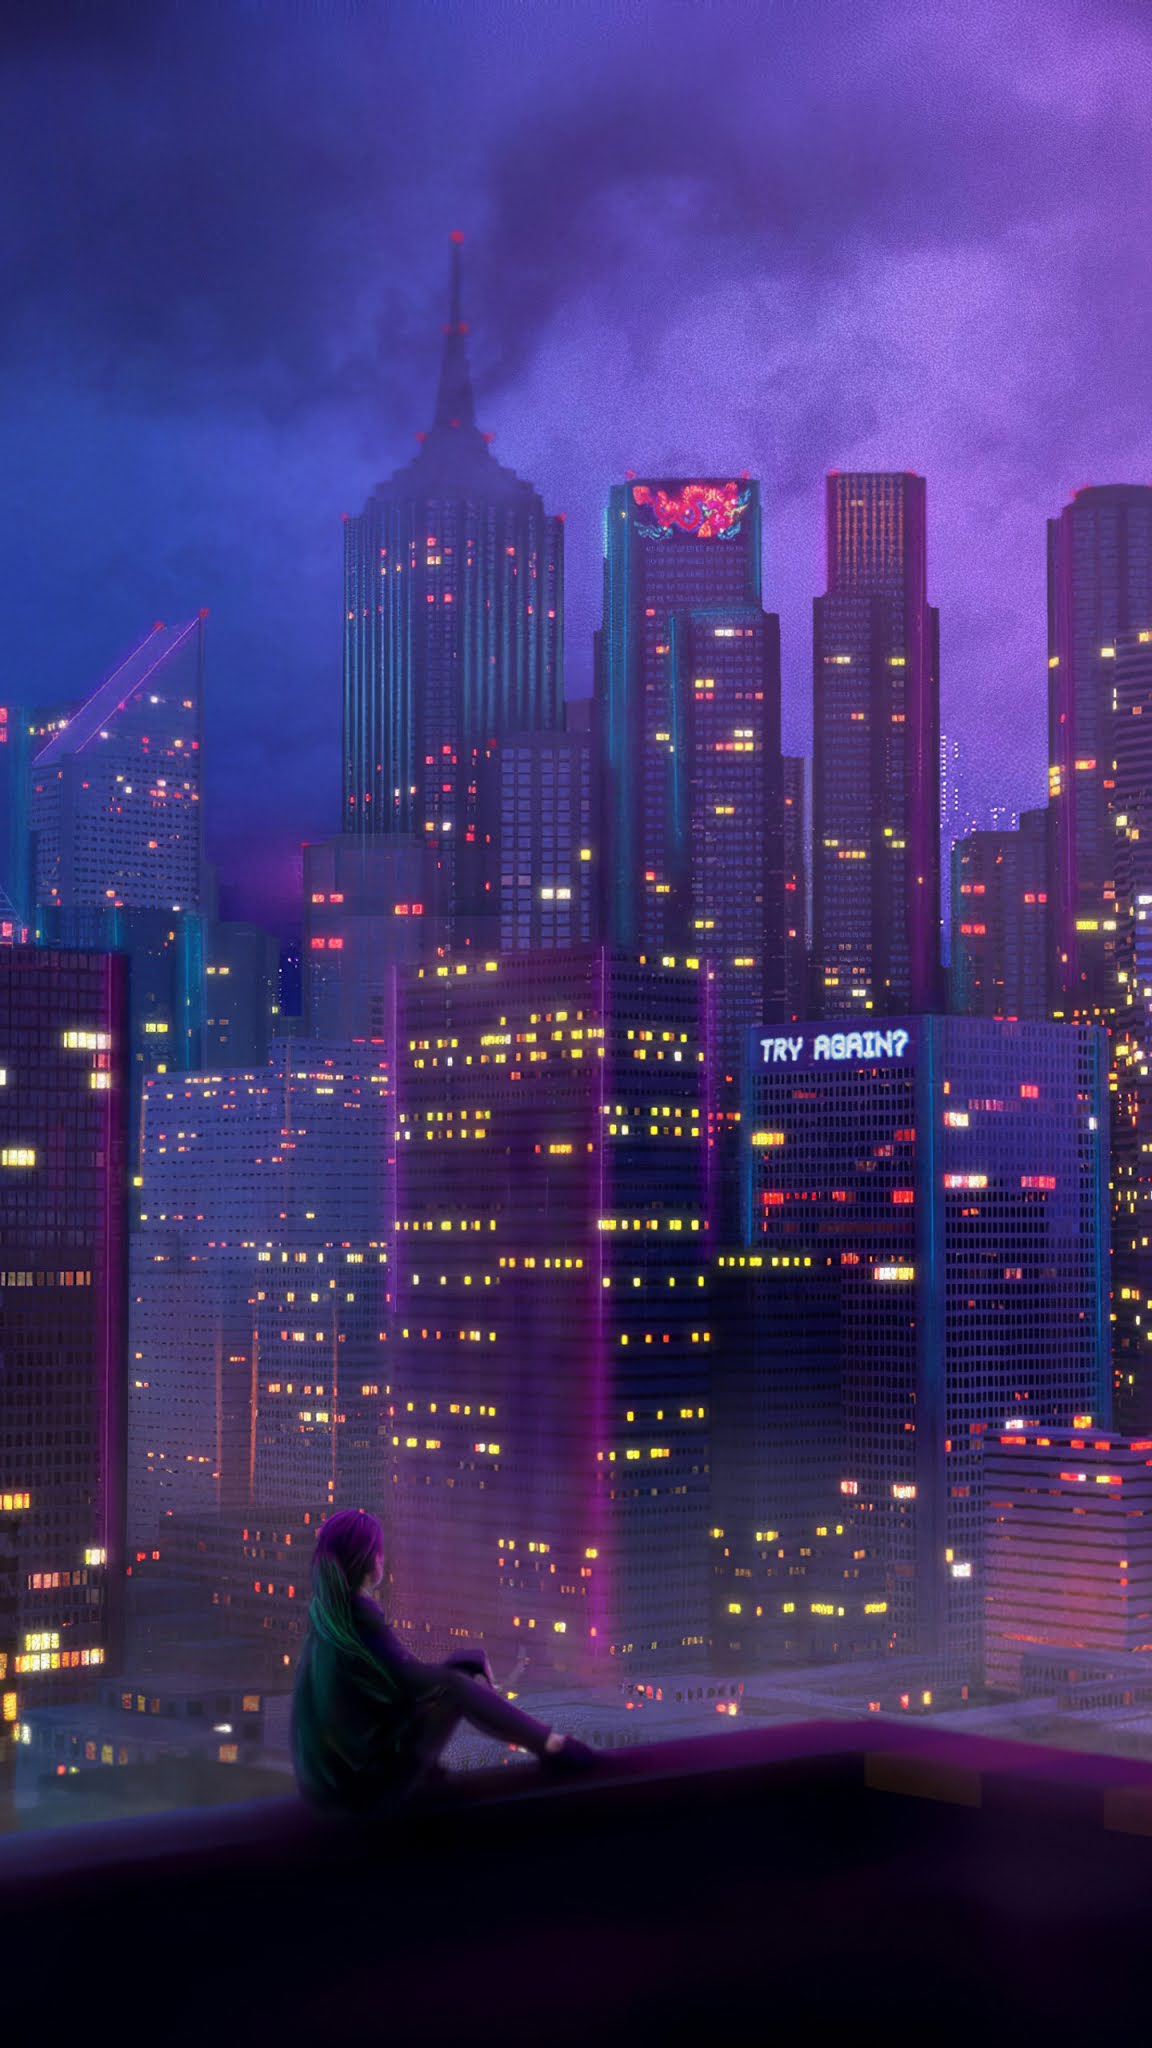 Alone Girl City lights 4k Wallpaper